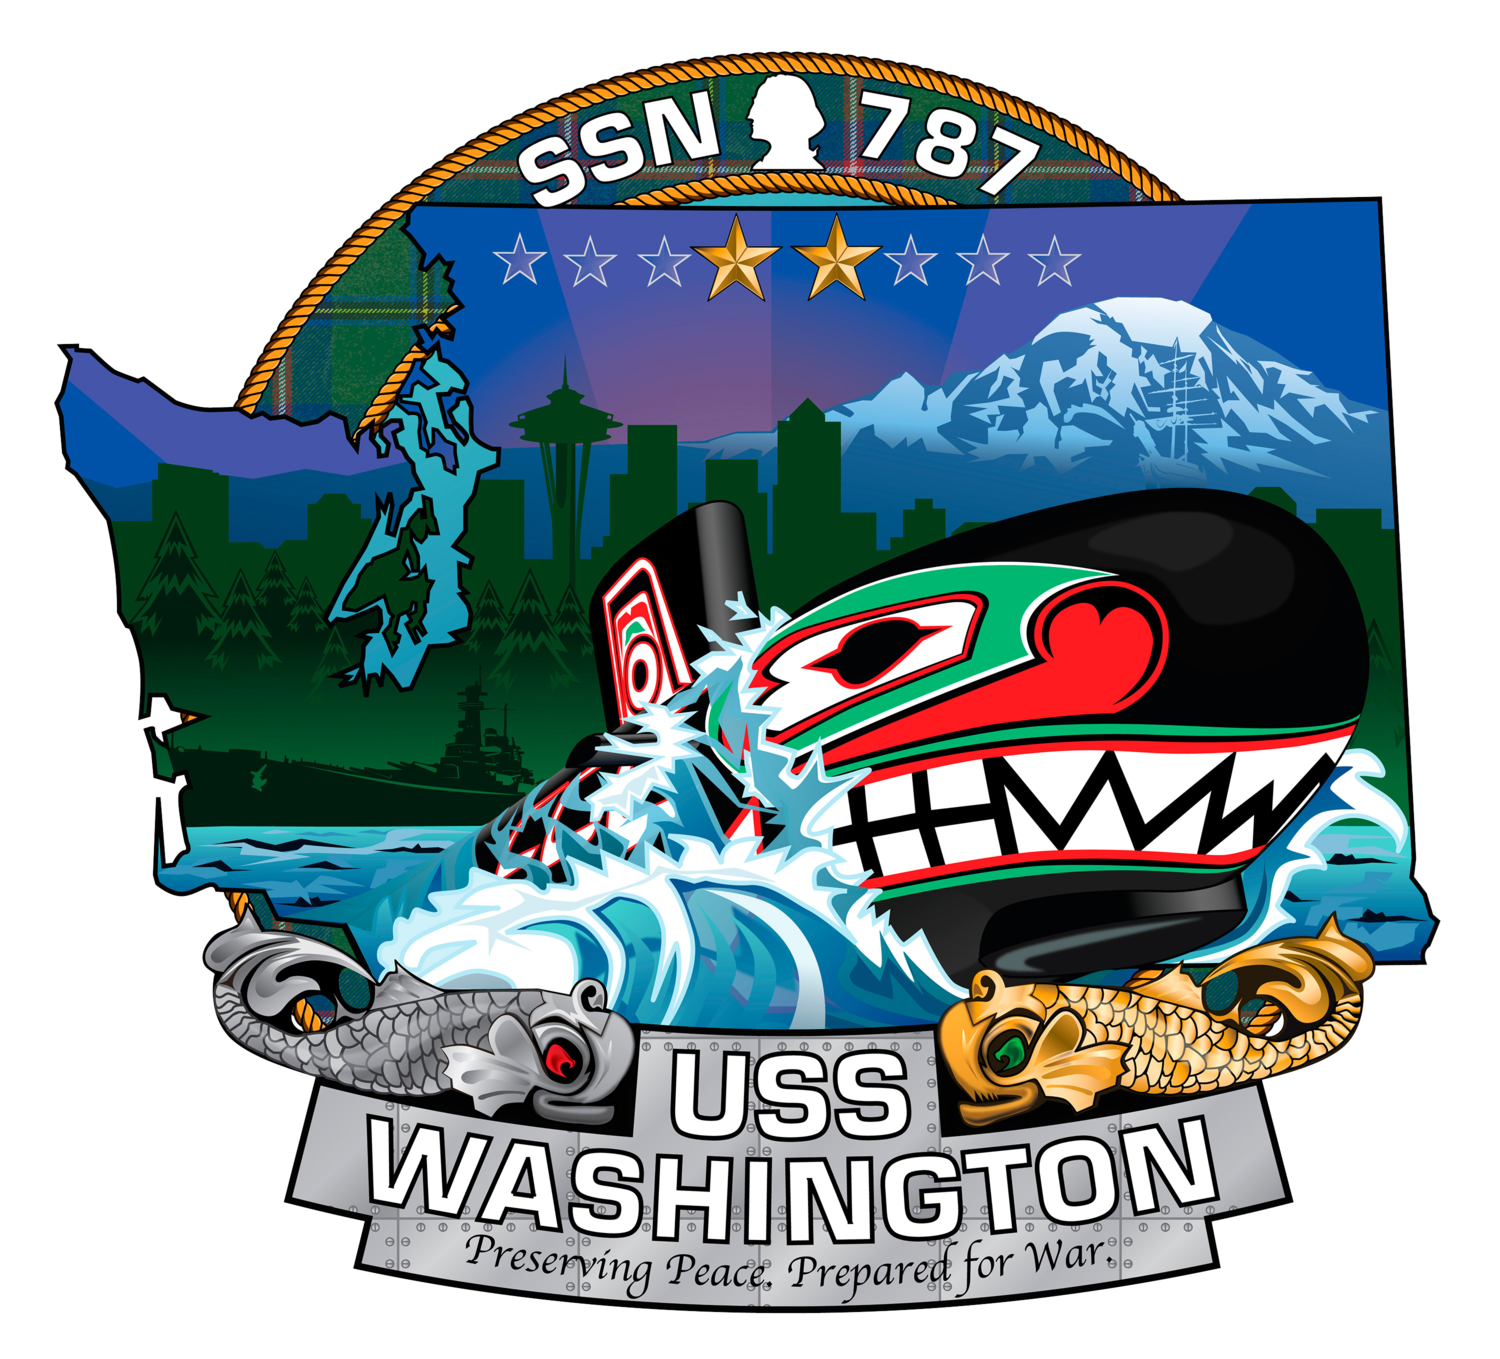 File Uss Washington Ssn 787 Png Wikimedia Commons